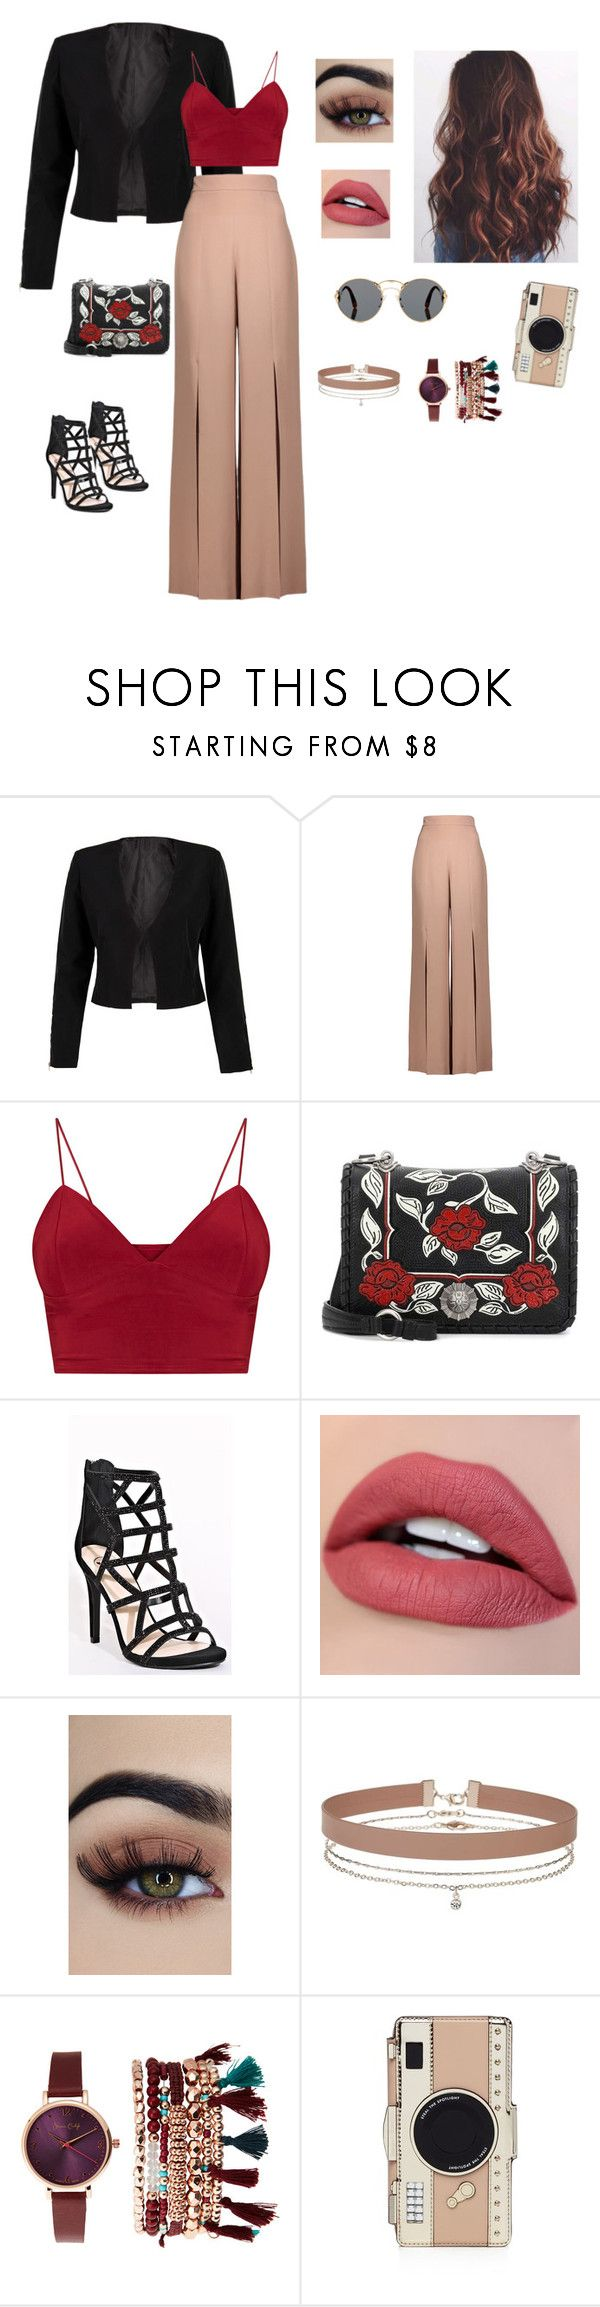 """❤️"" by cheerishy ❤ liked on Polyvore featuring WithChic, Cushnie Et Ochs, Miu Miu, Miss Selfridge, Jessica Carlyle, Kate Spade, Prada, outfit, red and stylish"